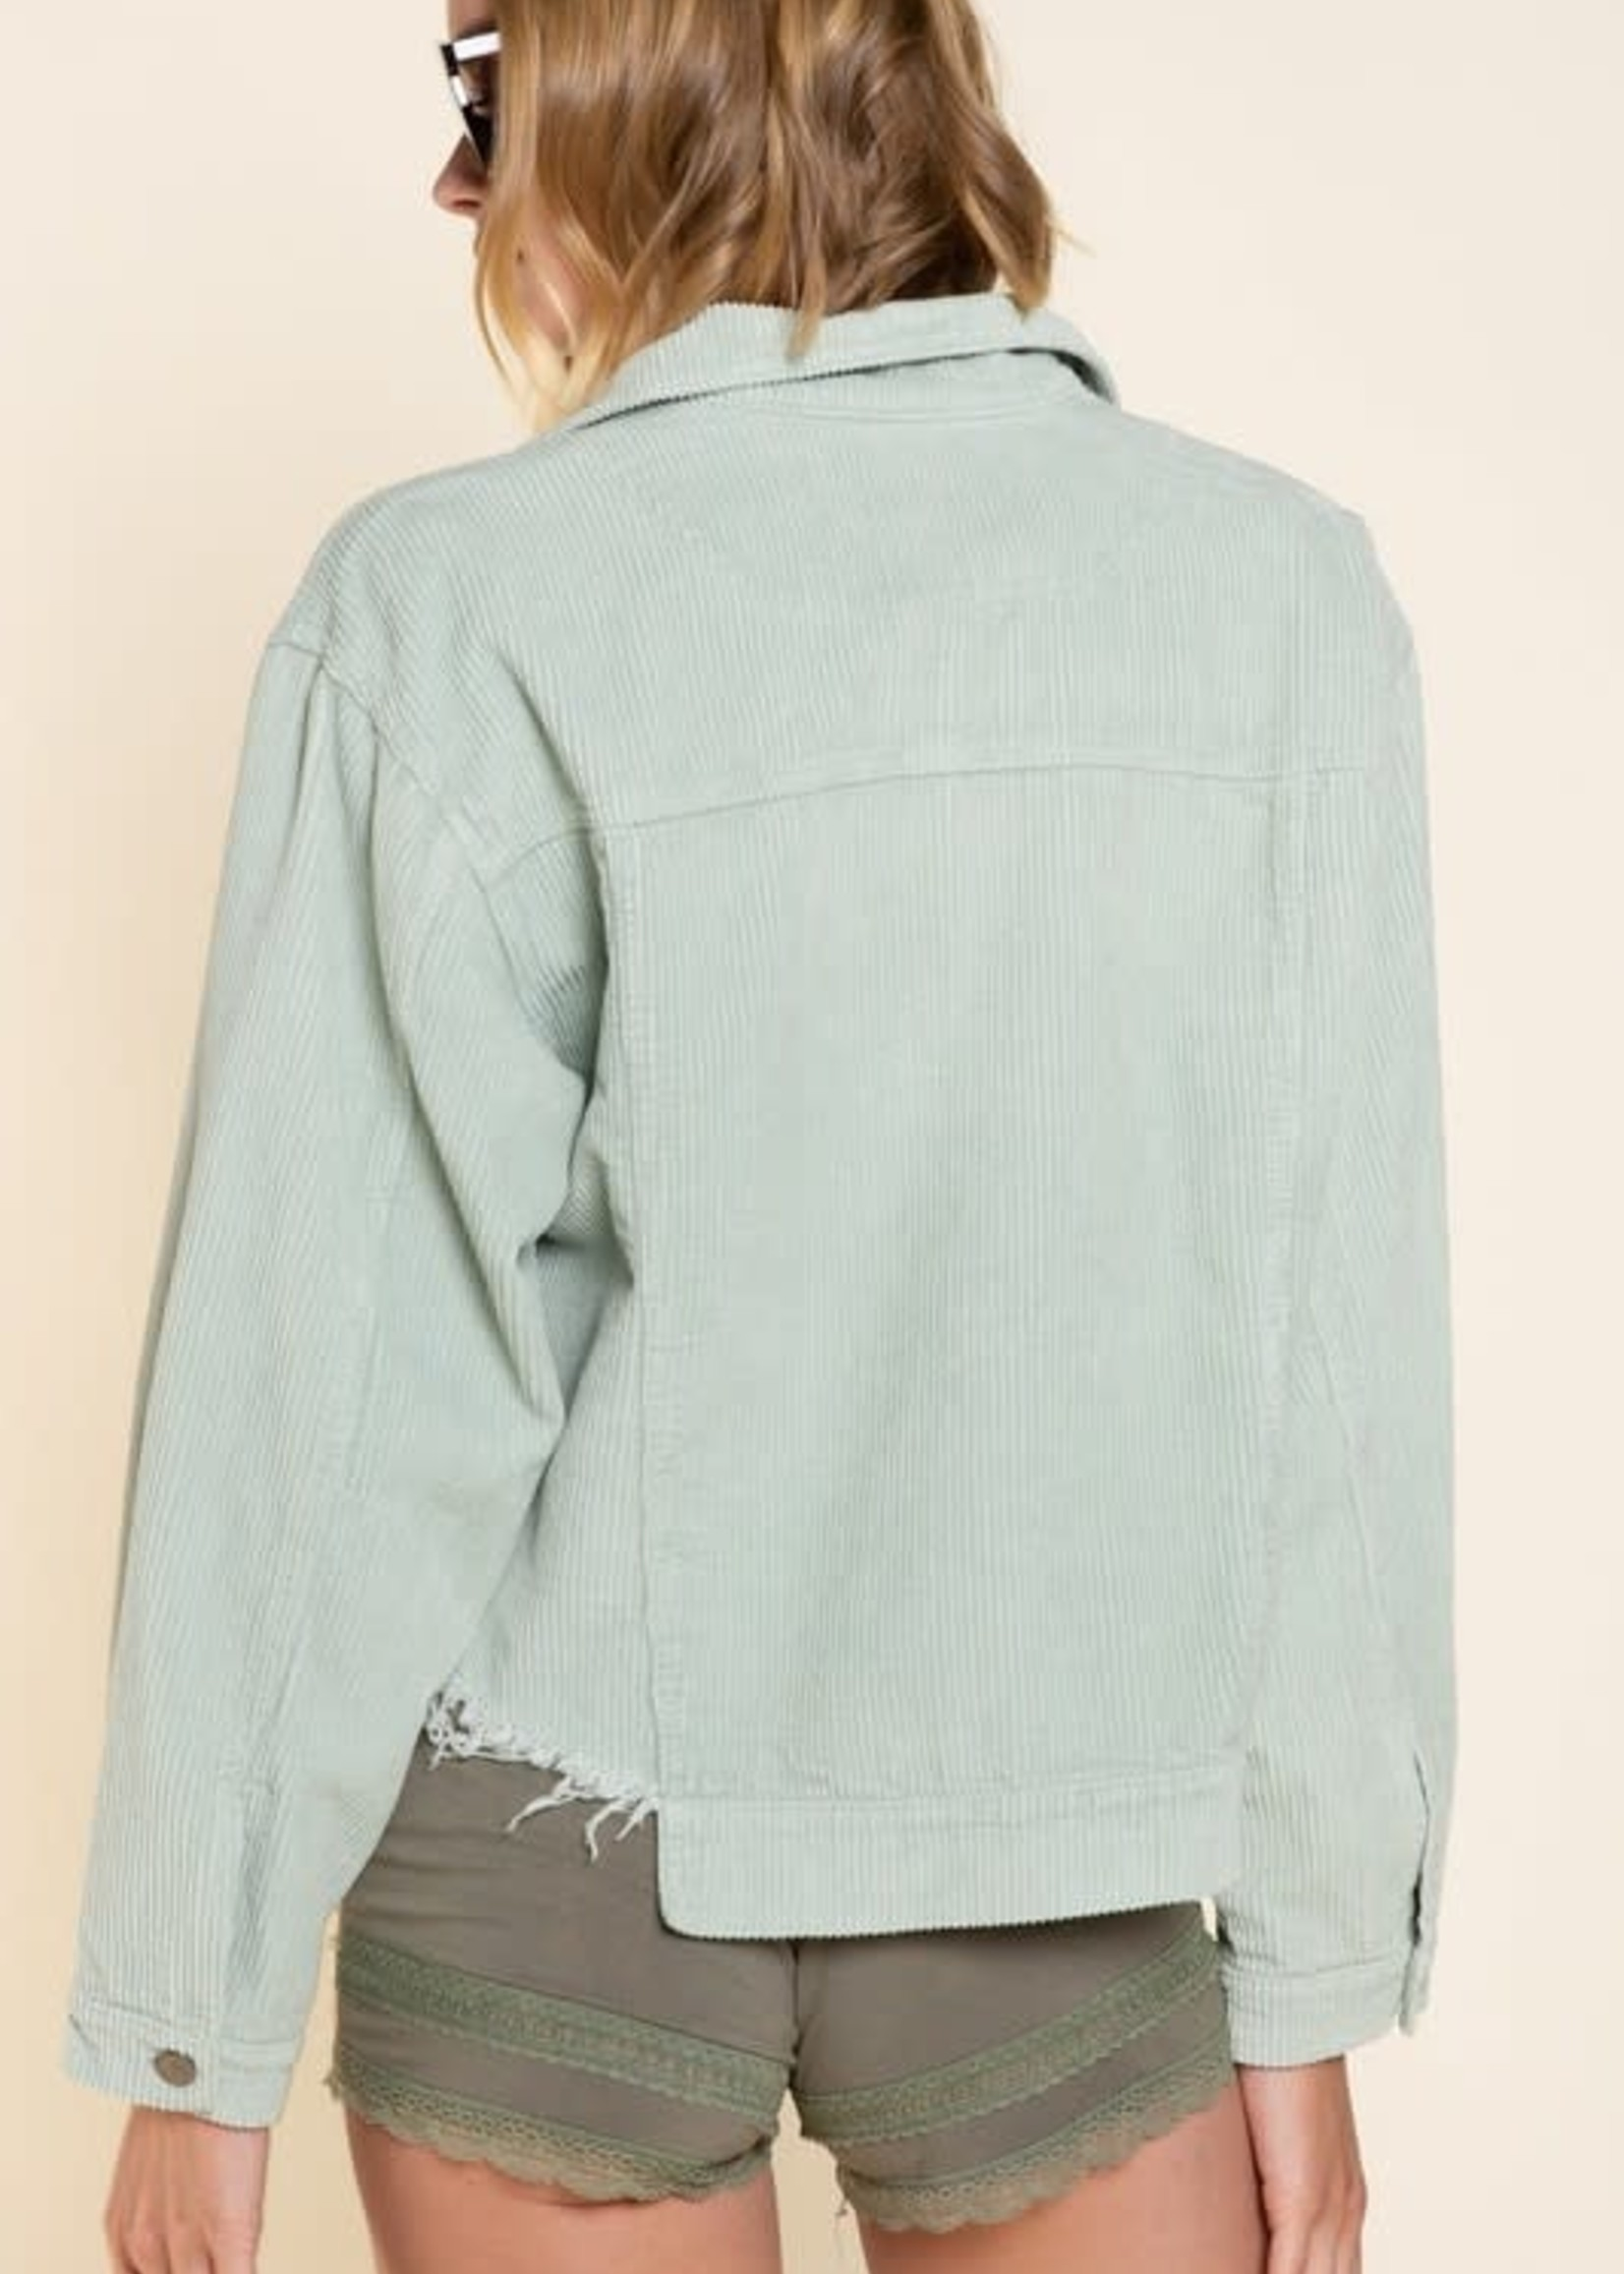 Call It A Day Sage Corduroy Jacket